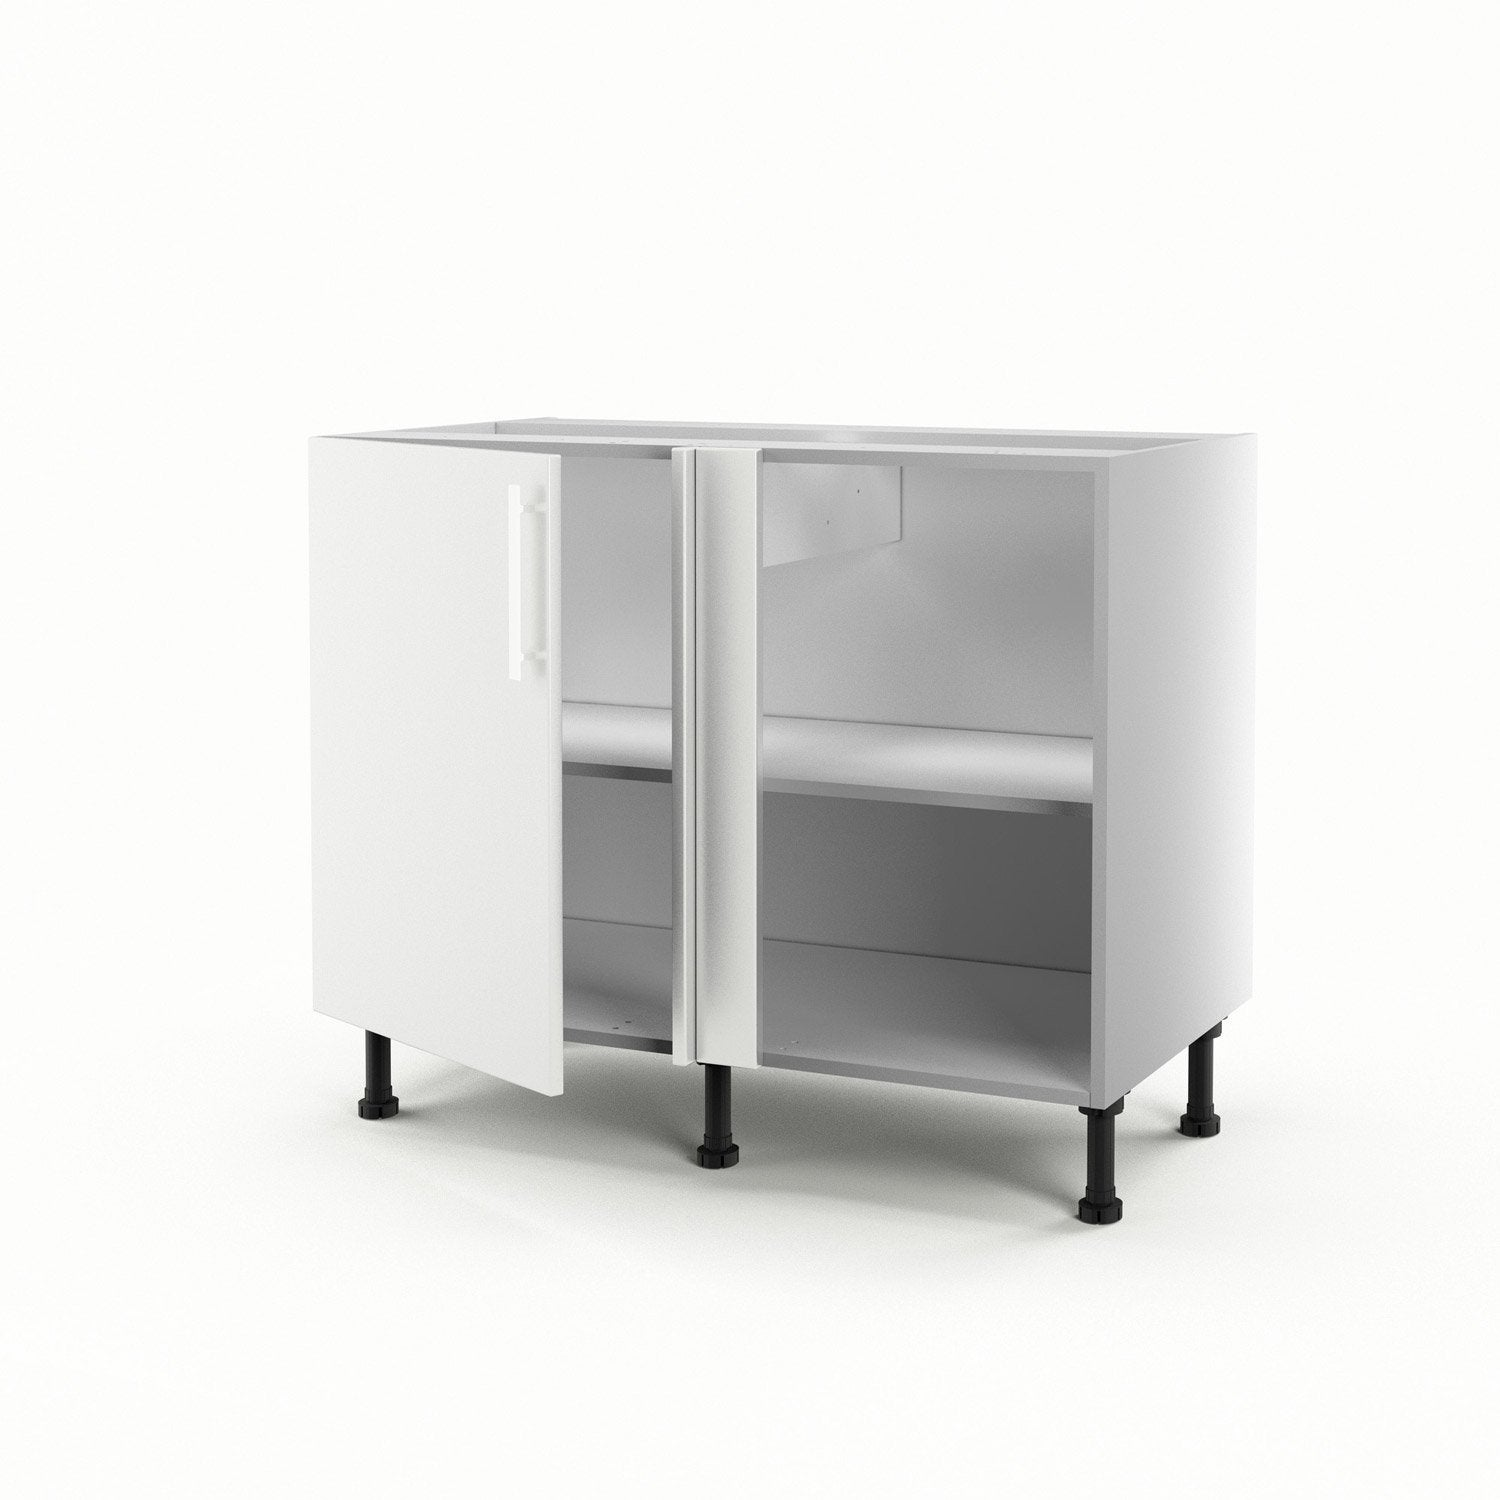 meuble de cuisine bas d 39 angle blanc 1 porte d lice x x cm leroy merlin. Black Bedroom Furniture Sets. Home Design Ideas